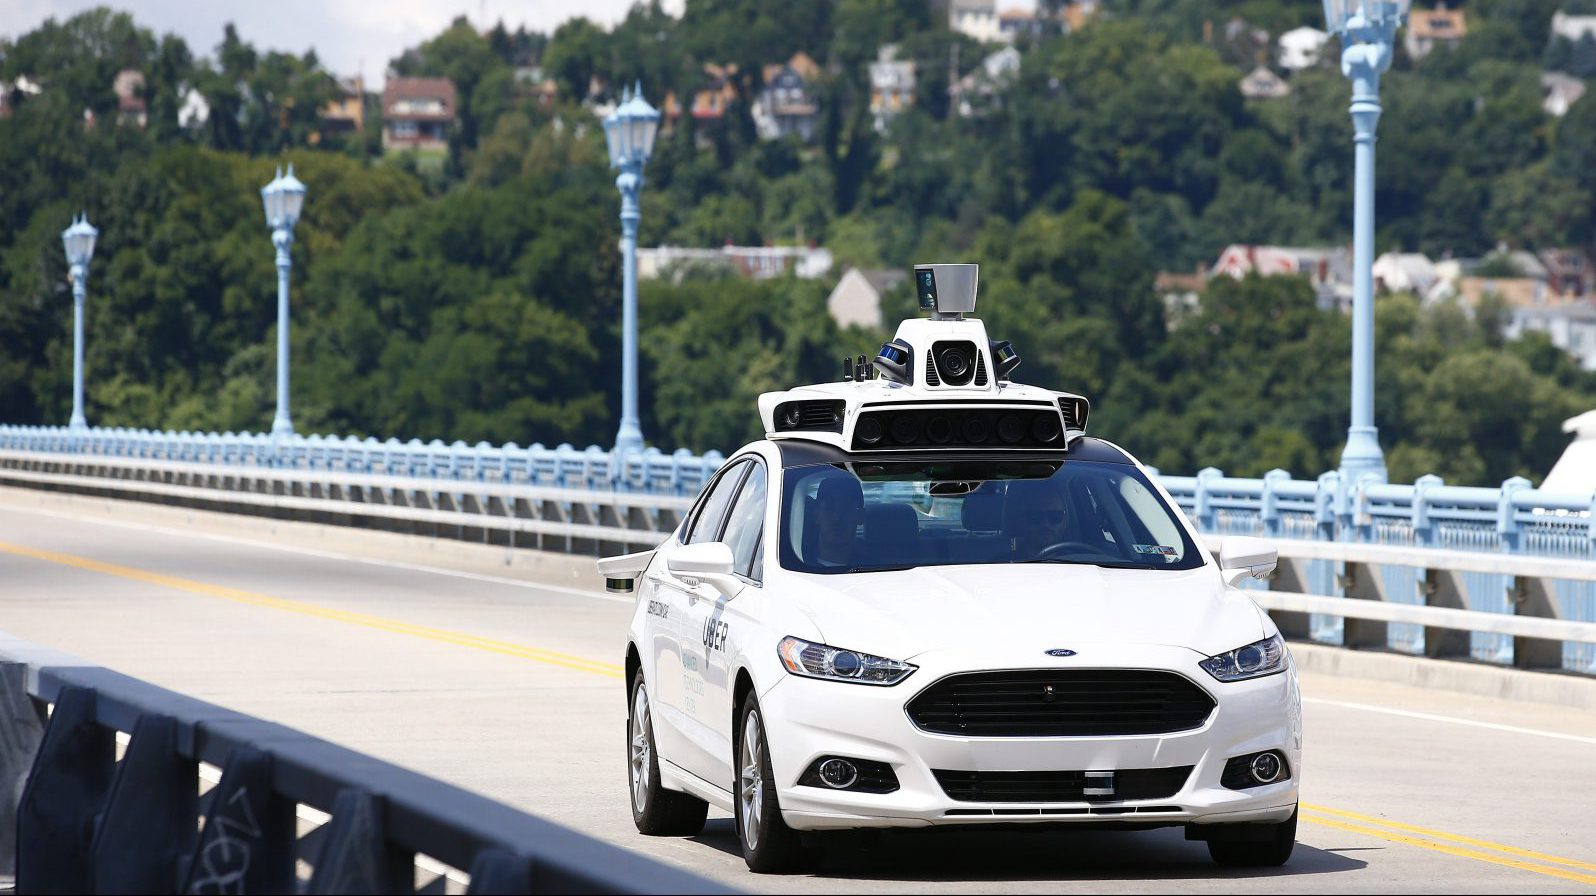 Self-driving cars will cost more than $250,000 with today's